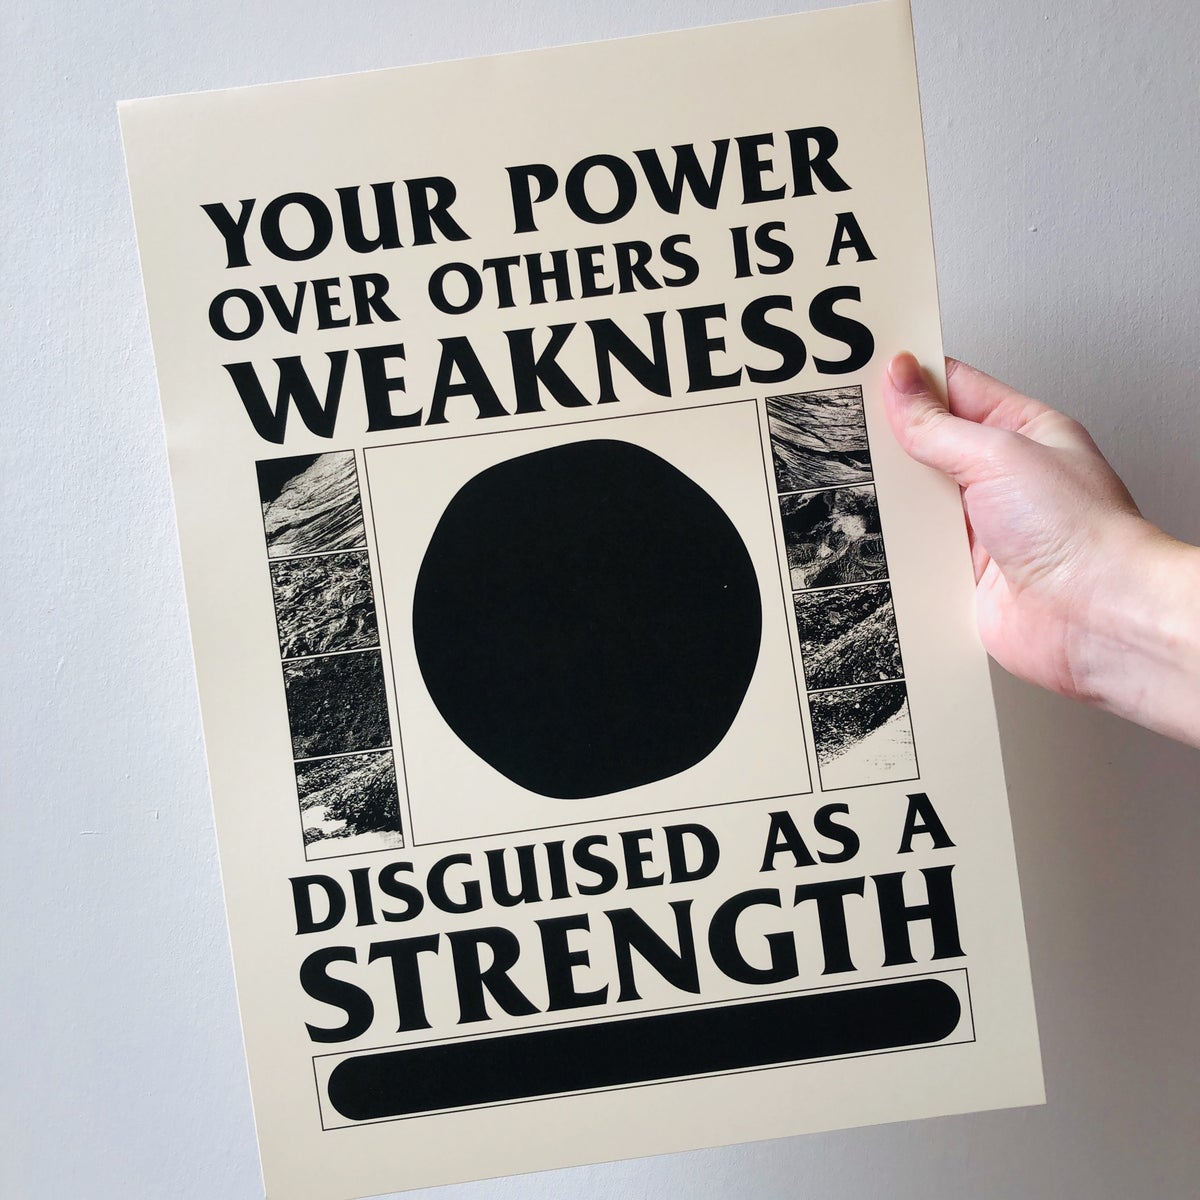 Image of Your Power Over Others is a Weakness Disguised as a Strength digital A3 print